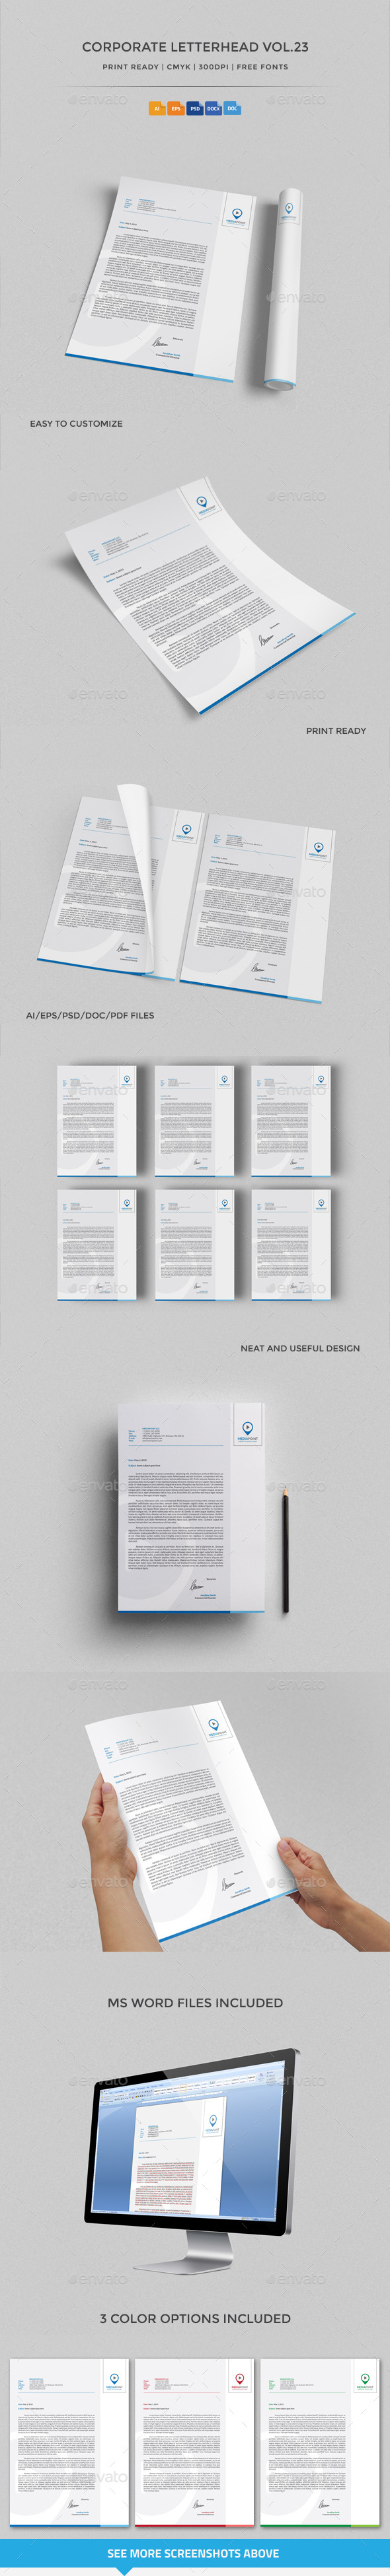 GraphicRiver Corporate Letterhead vol.23 with MS Word DOC DOCX 10264673